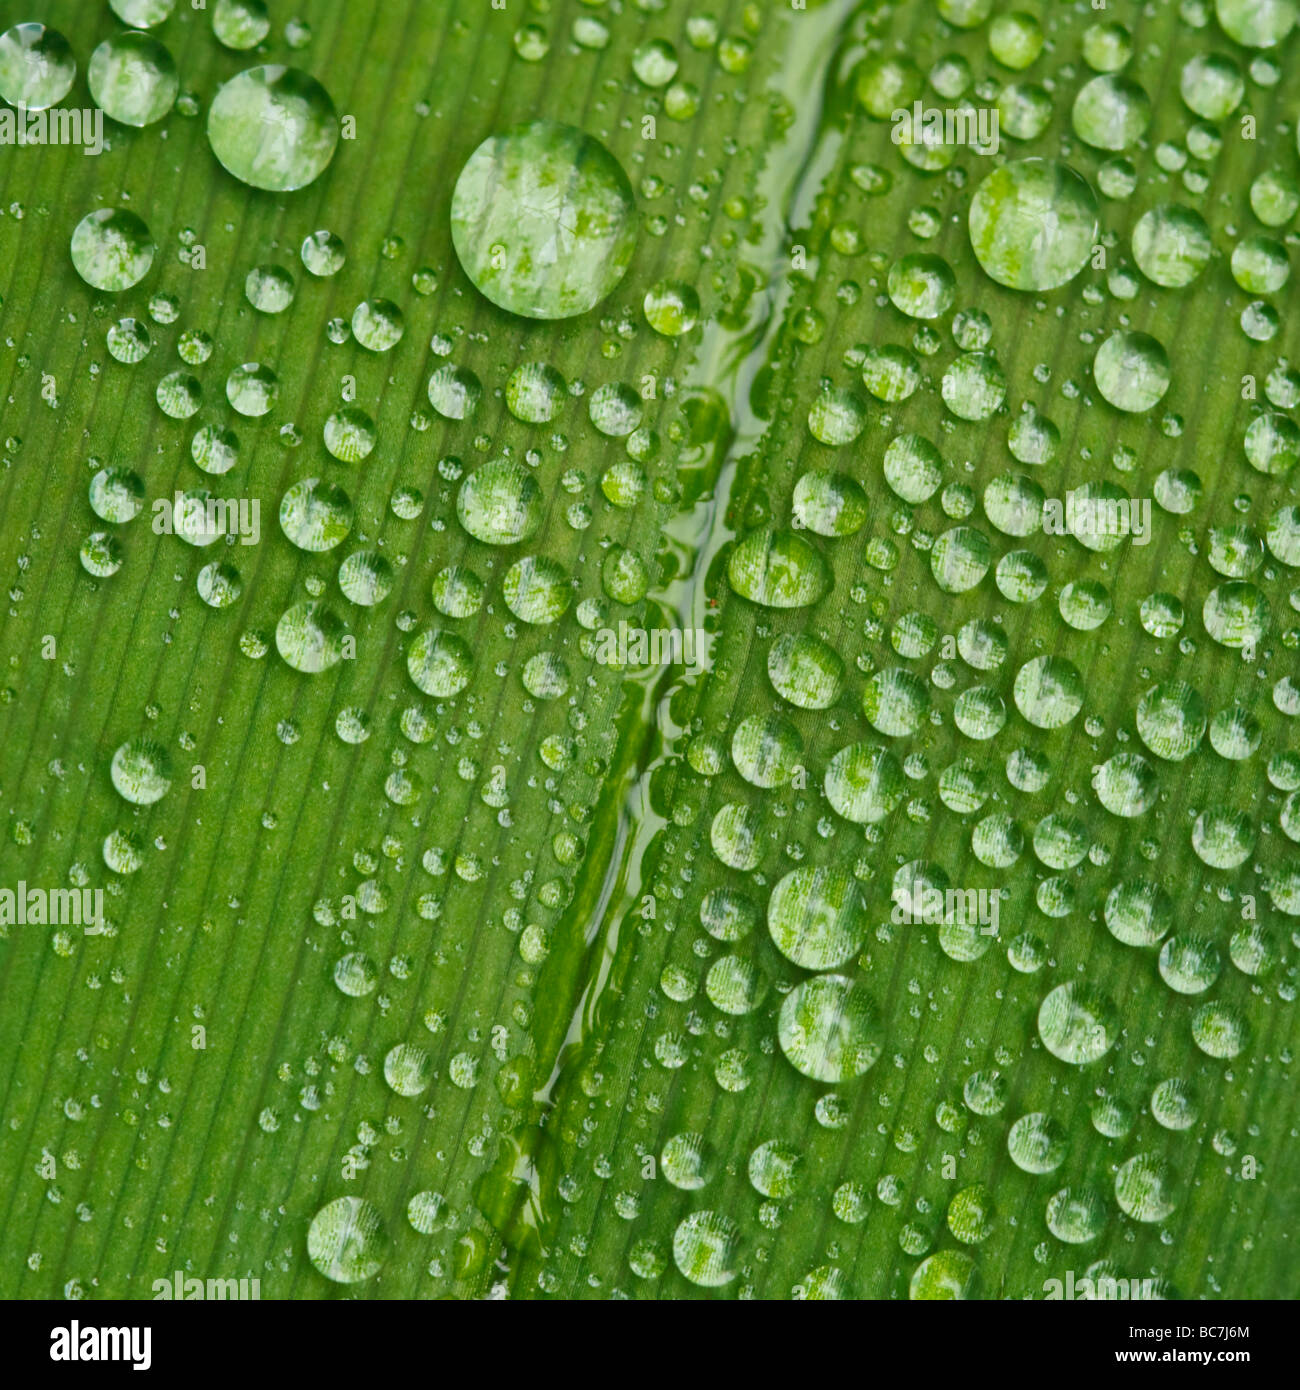 Raindrops on a daylily leaf - Stock Image